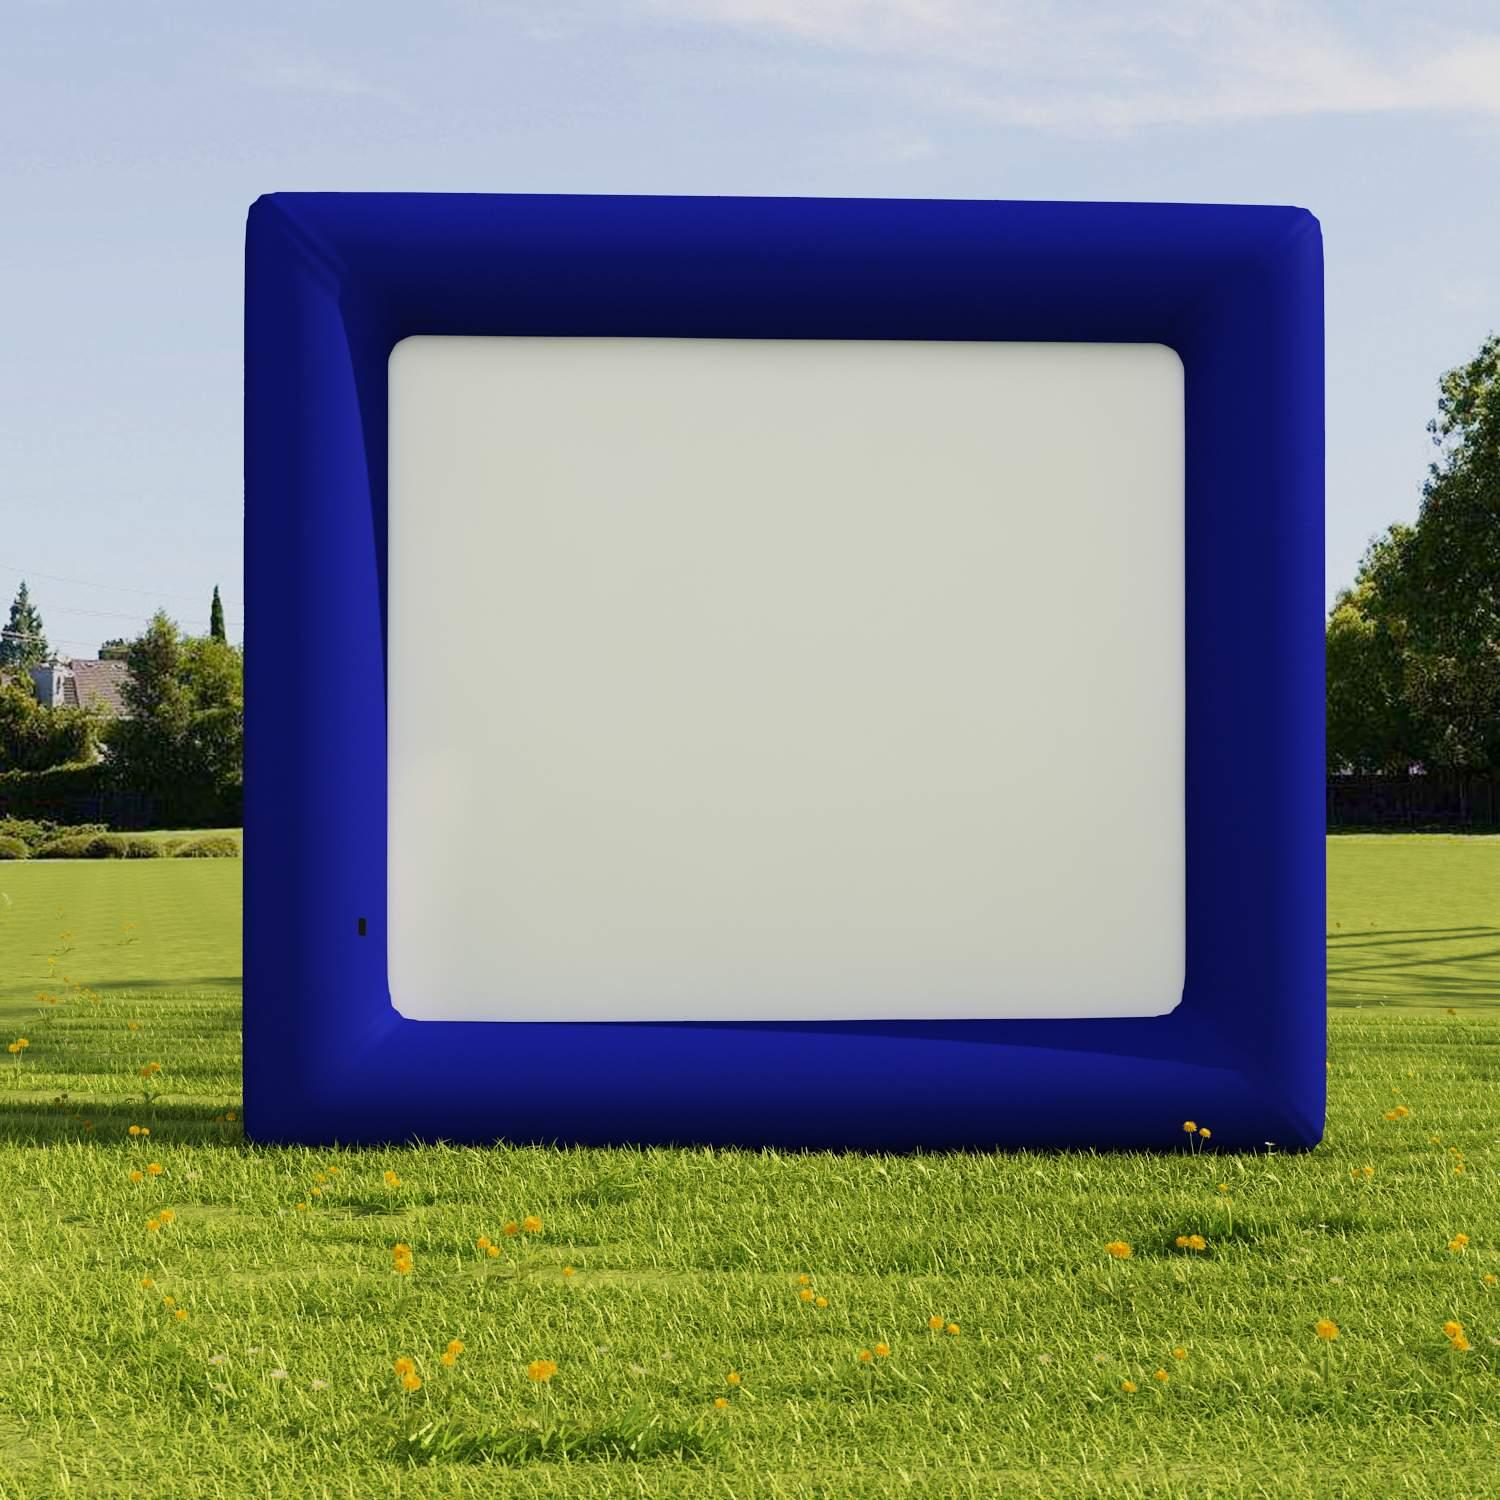 Clearance! Hascon Inflatable Movie Screen 13.1 x 11.5ft Airblown Outdoor Inflatable Movie Screen Projection Screen for Outdoor Parties (Fan pump not included)